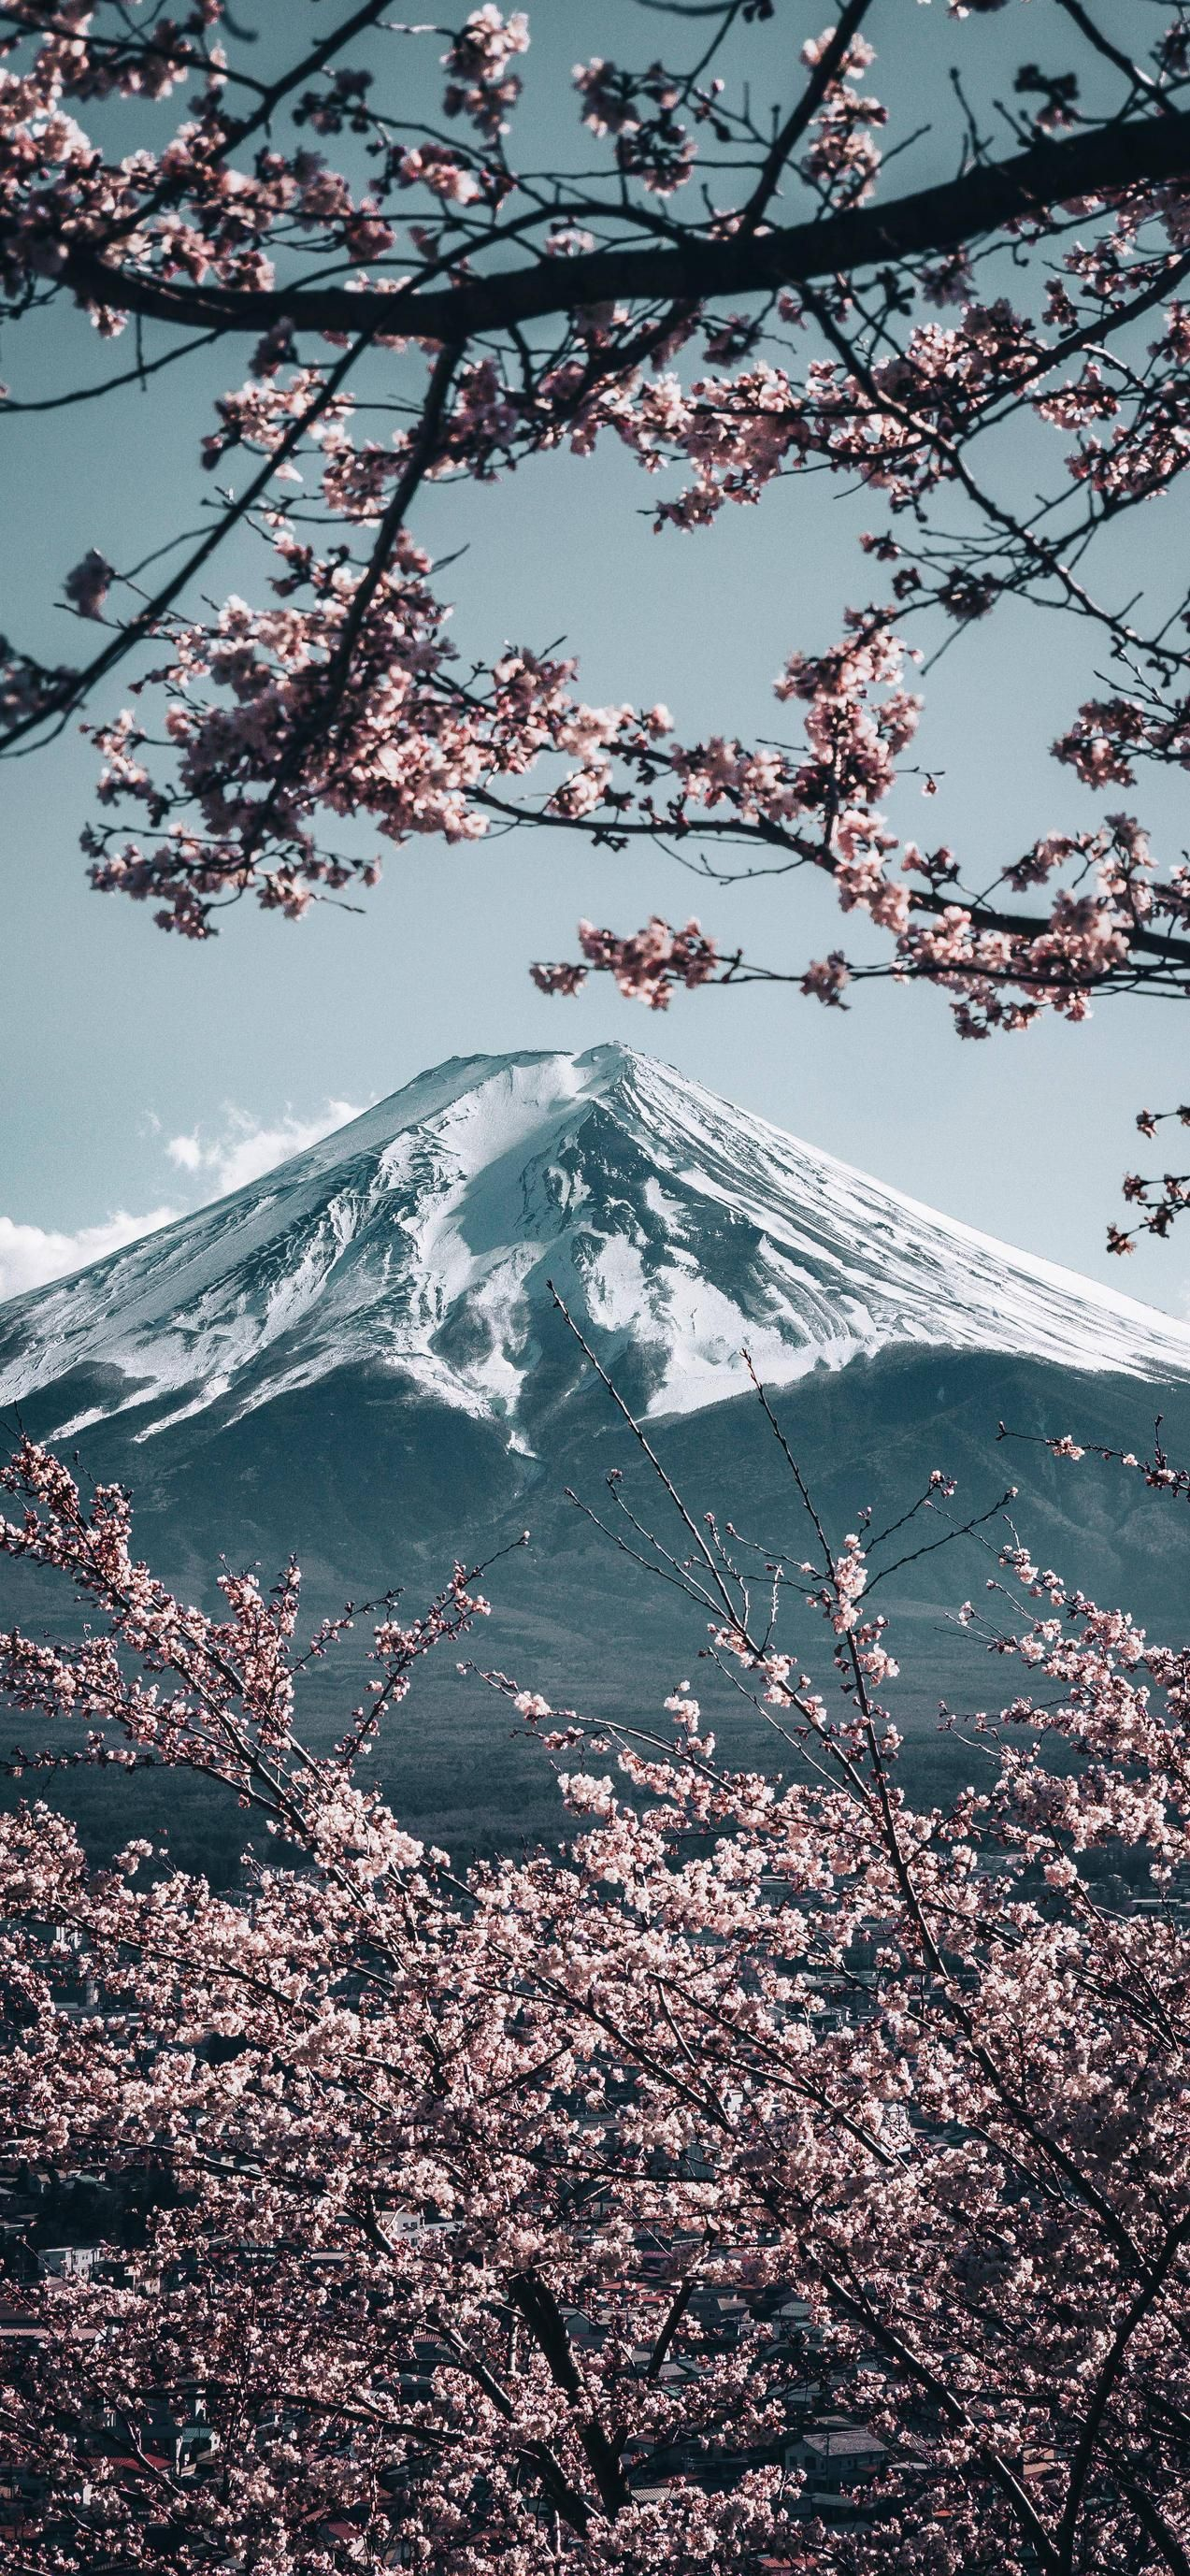 How High Is A Japanese Mountain Iphone Wallpaper Mountains Japanese Wallpaper Iphone Japanese Mountains